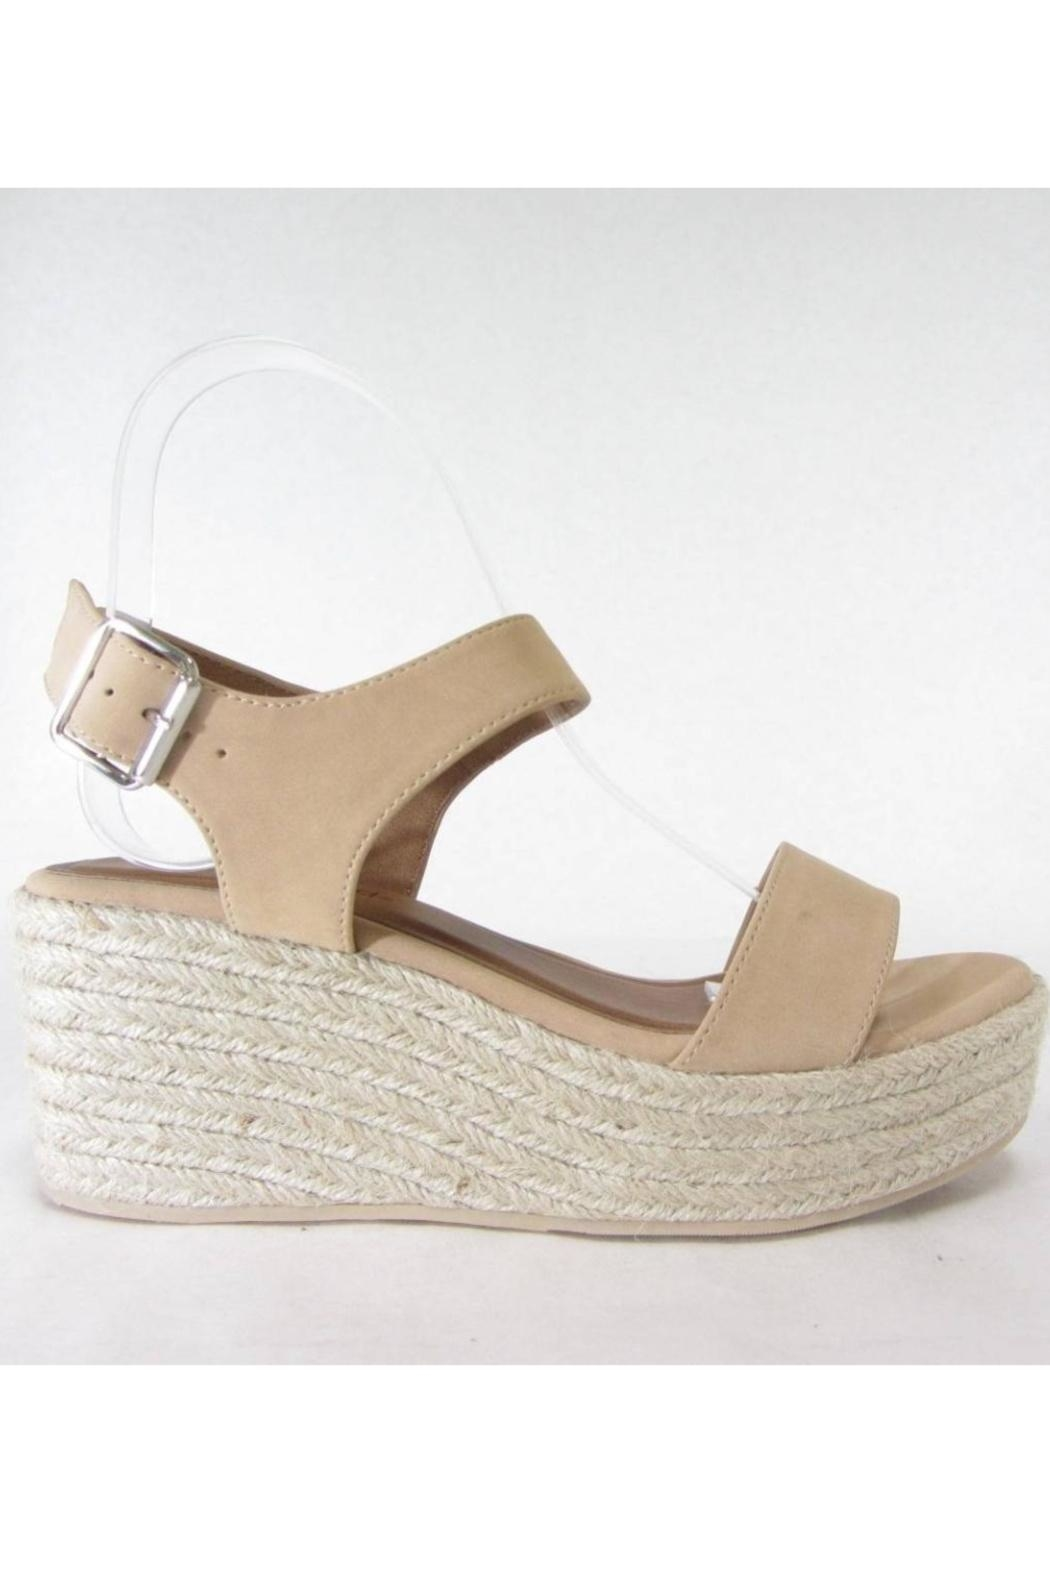 City Classified Luthor Nude Espadrille - Front Cropped Image